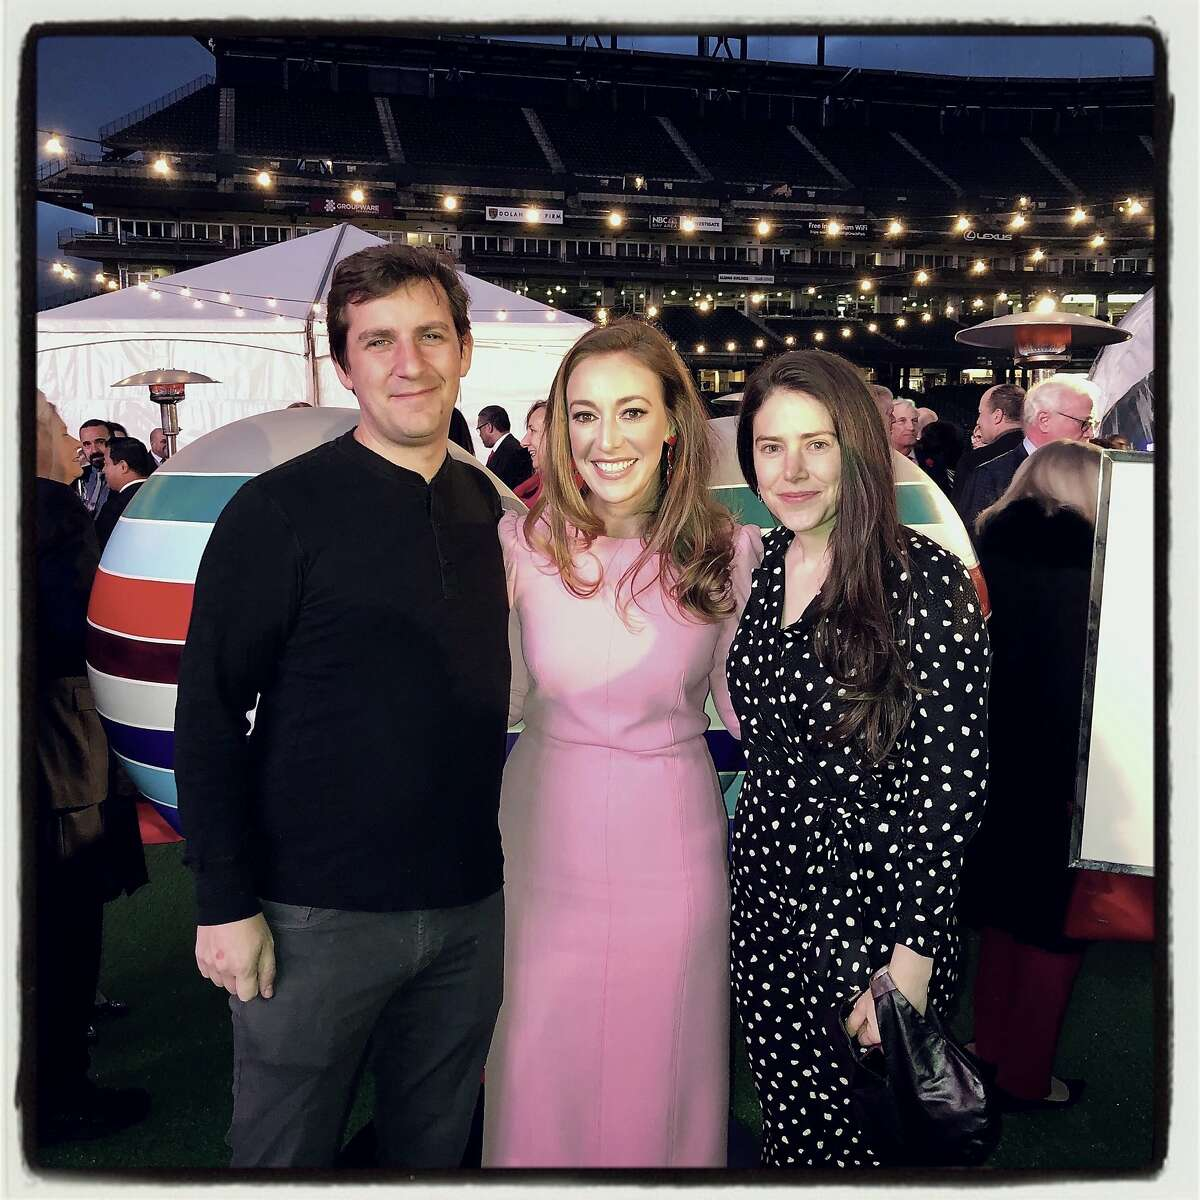 SF General Hospital Foundation trustees and Hearts co-chairs Andrew McCollum and Schuyler Hudak with FertilityIQ co-founder Deborah Anderson-Bialis at Oracle Park. Feb. 13, 2020.